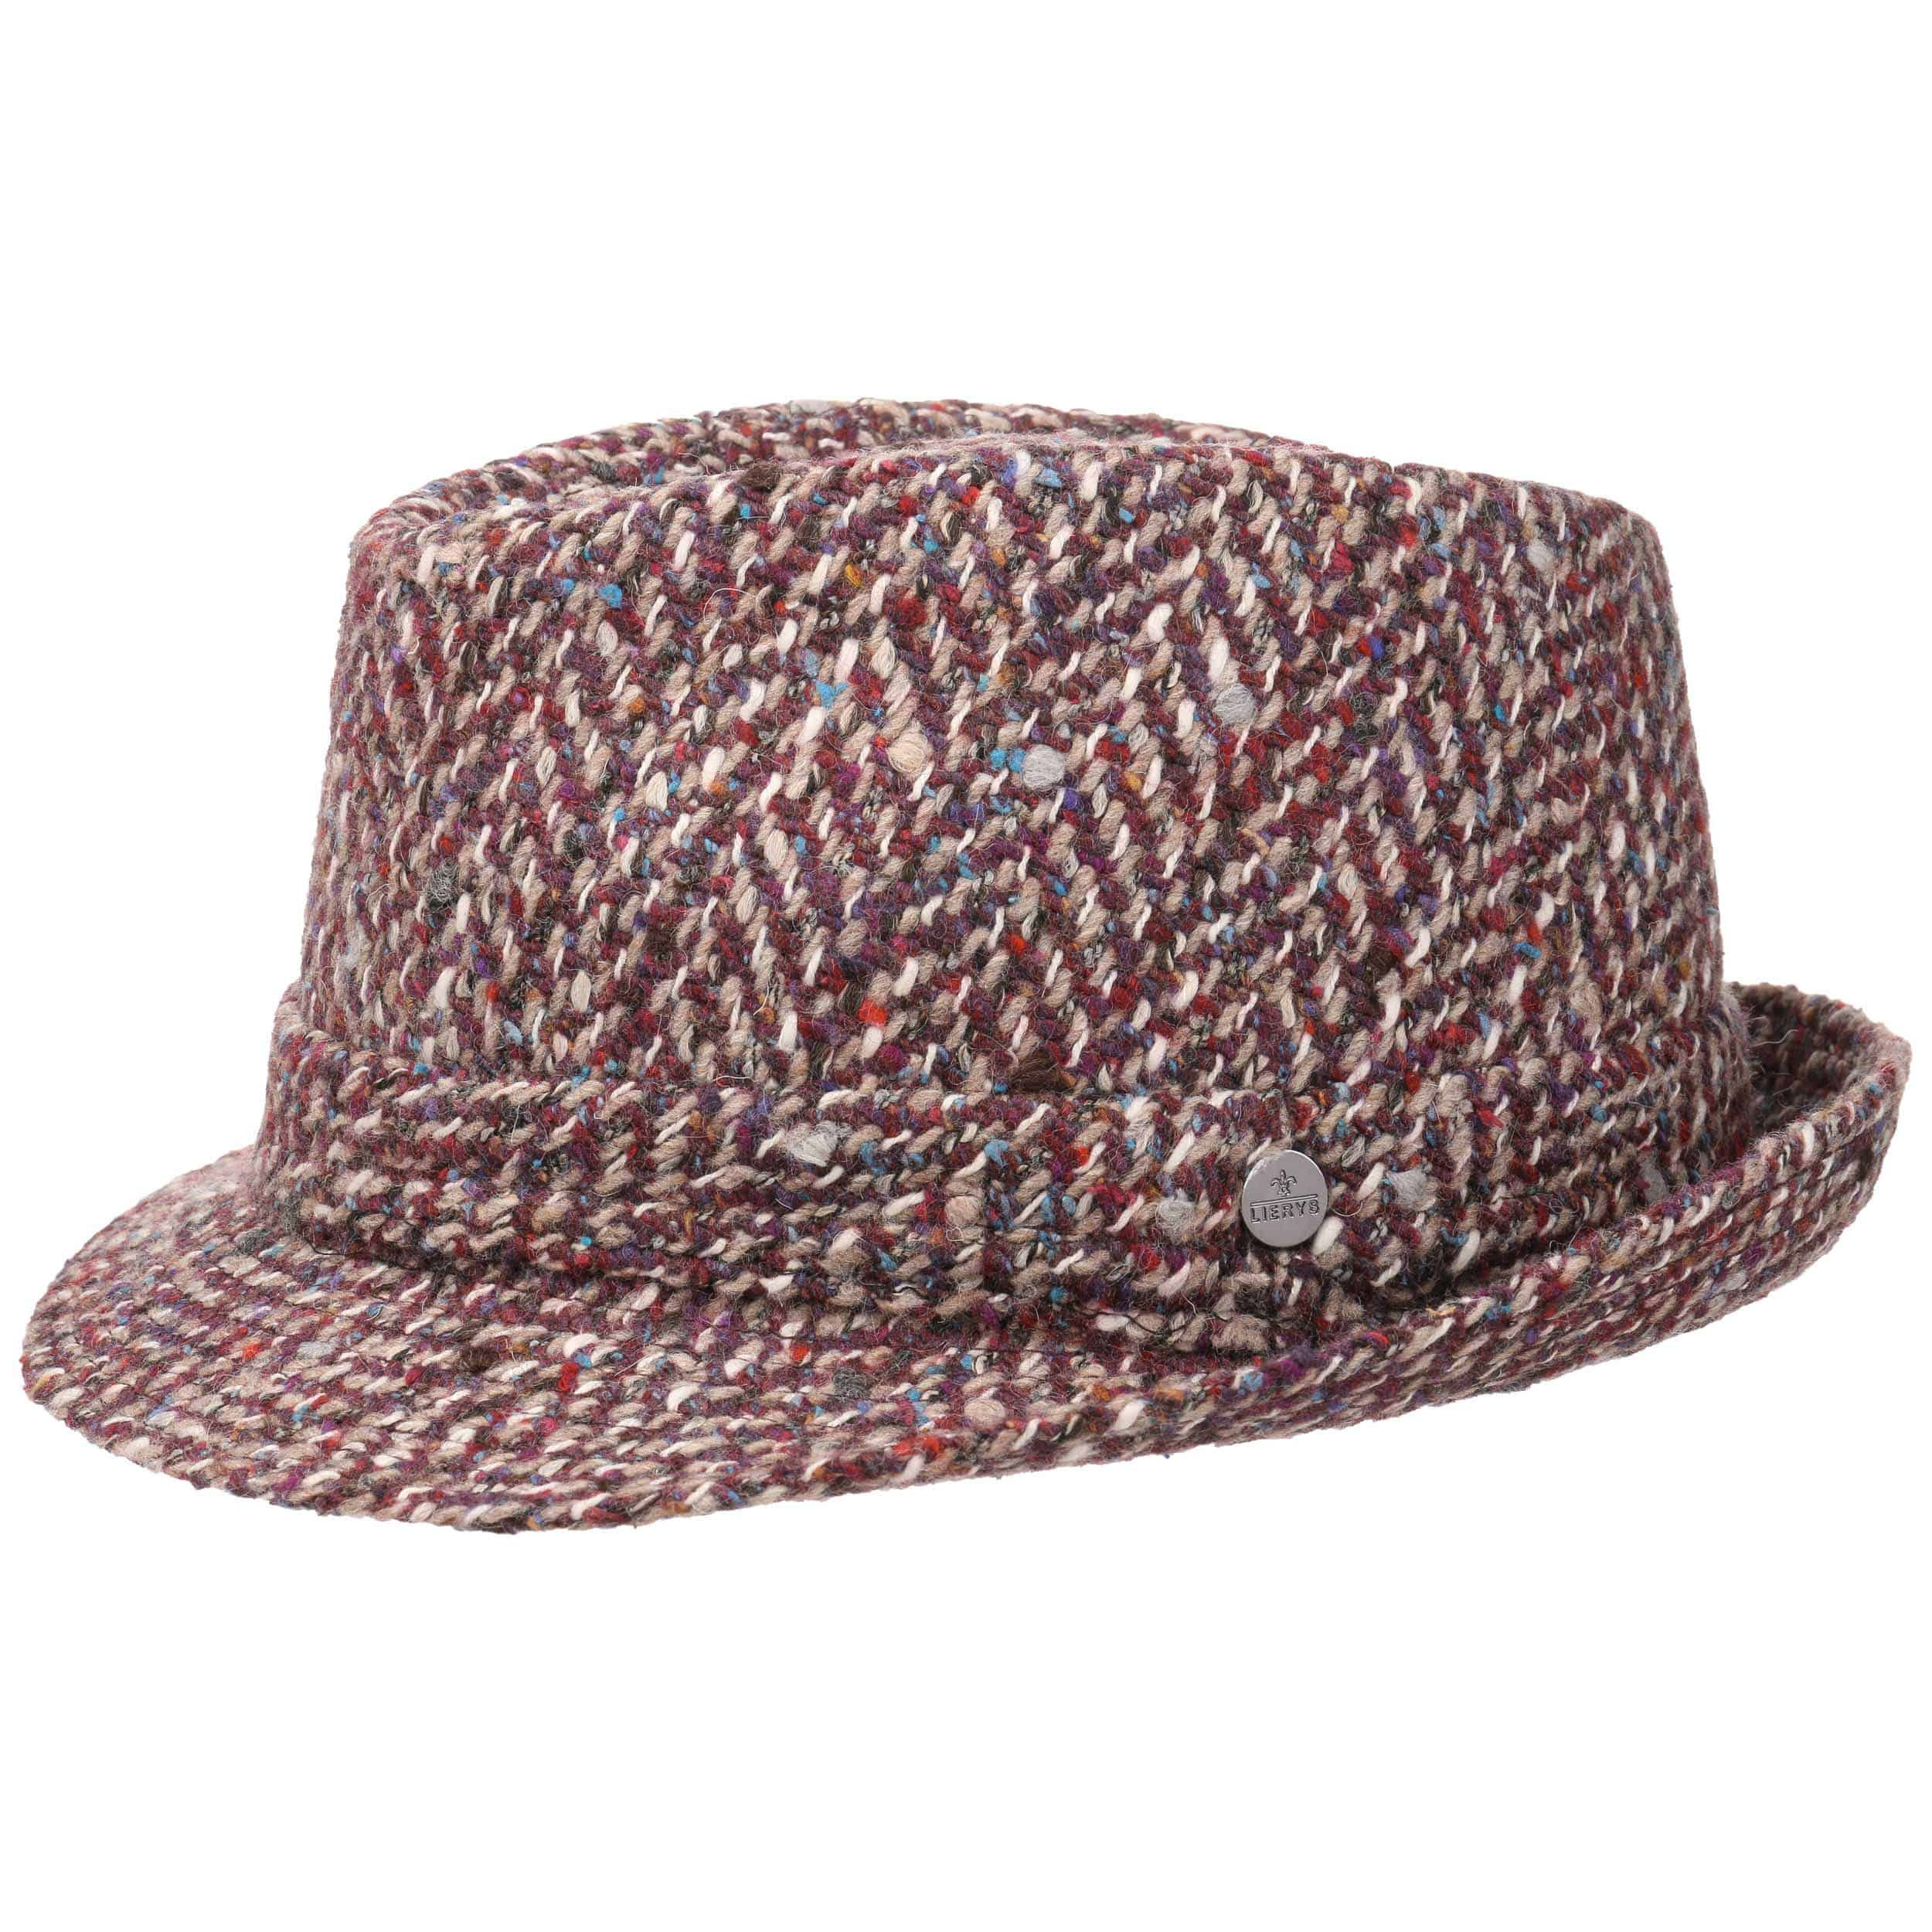 Superlight Crushable Trilby Hat by Lierys Trilby hats Lierys